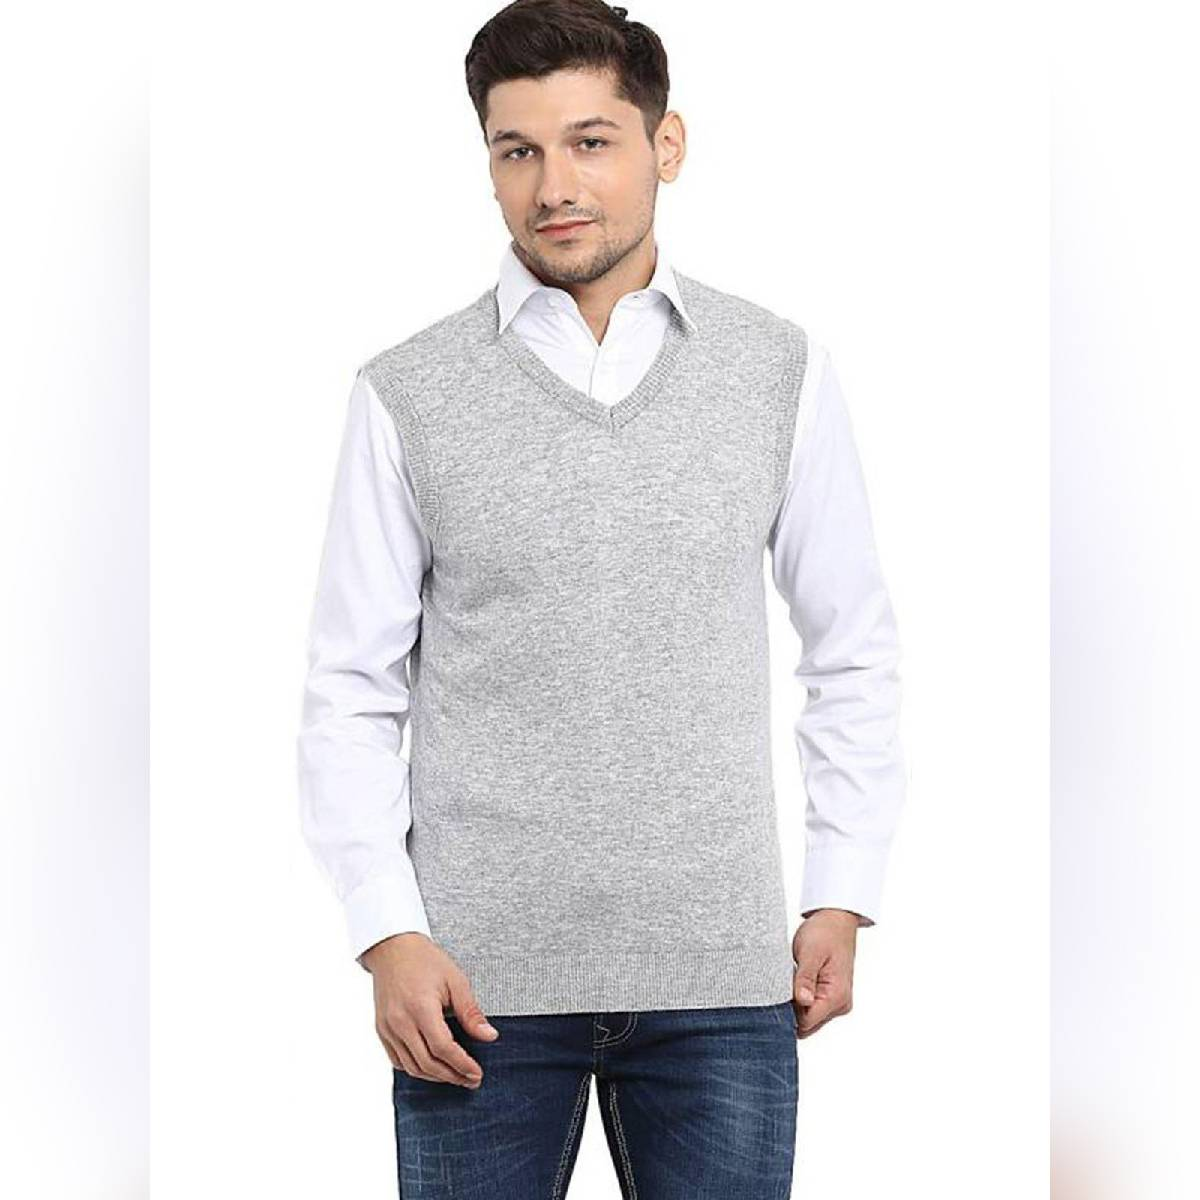 BWS |Sleeve Less Fleece Sweaters In Grey For Him !